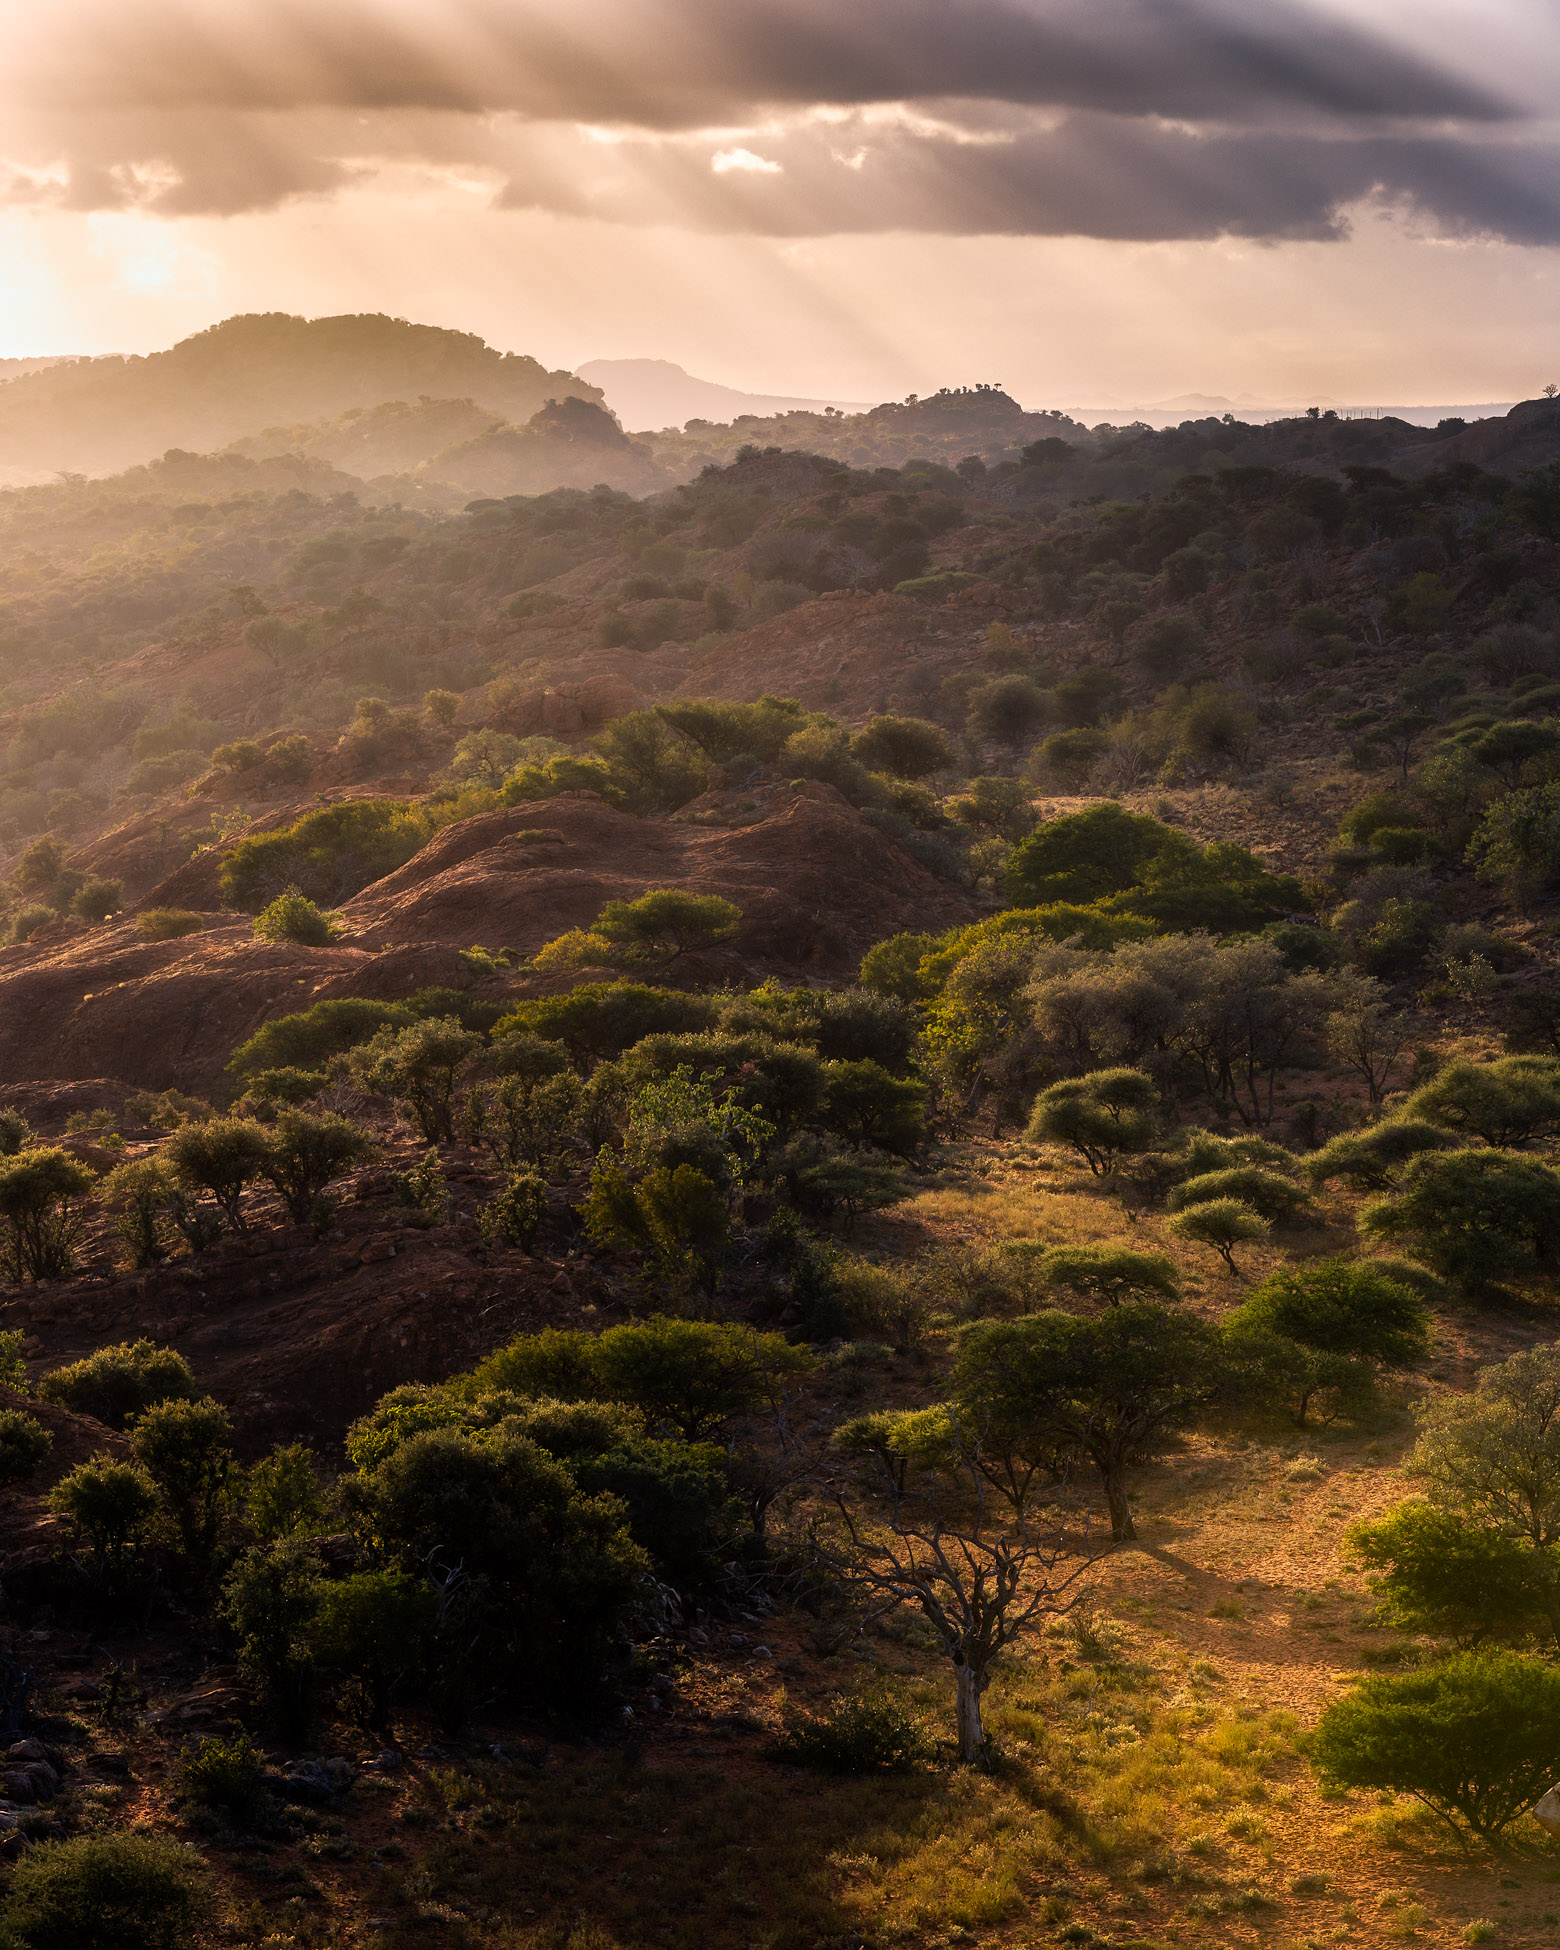 Venda Hills Sunrise - African Landscape photography by Mike O'Leary - Greengraf Photography_.jpg